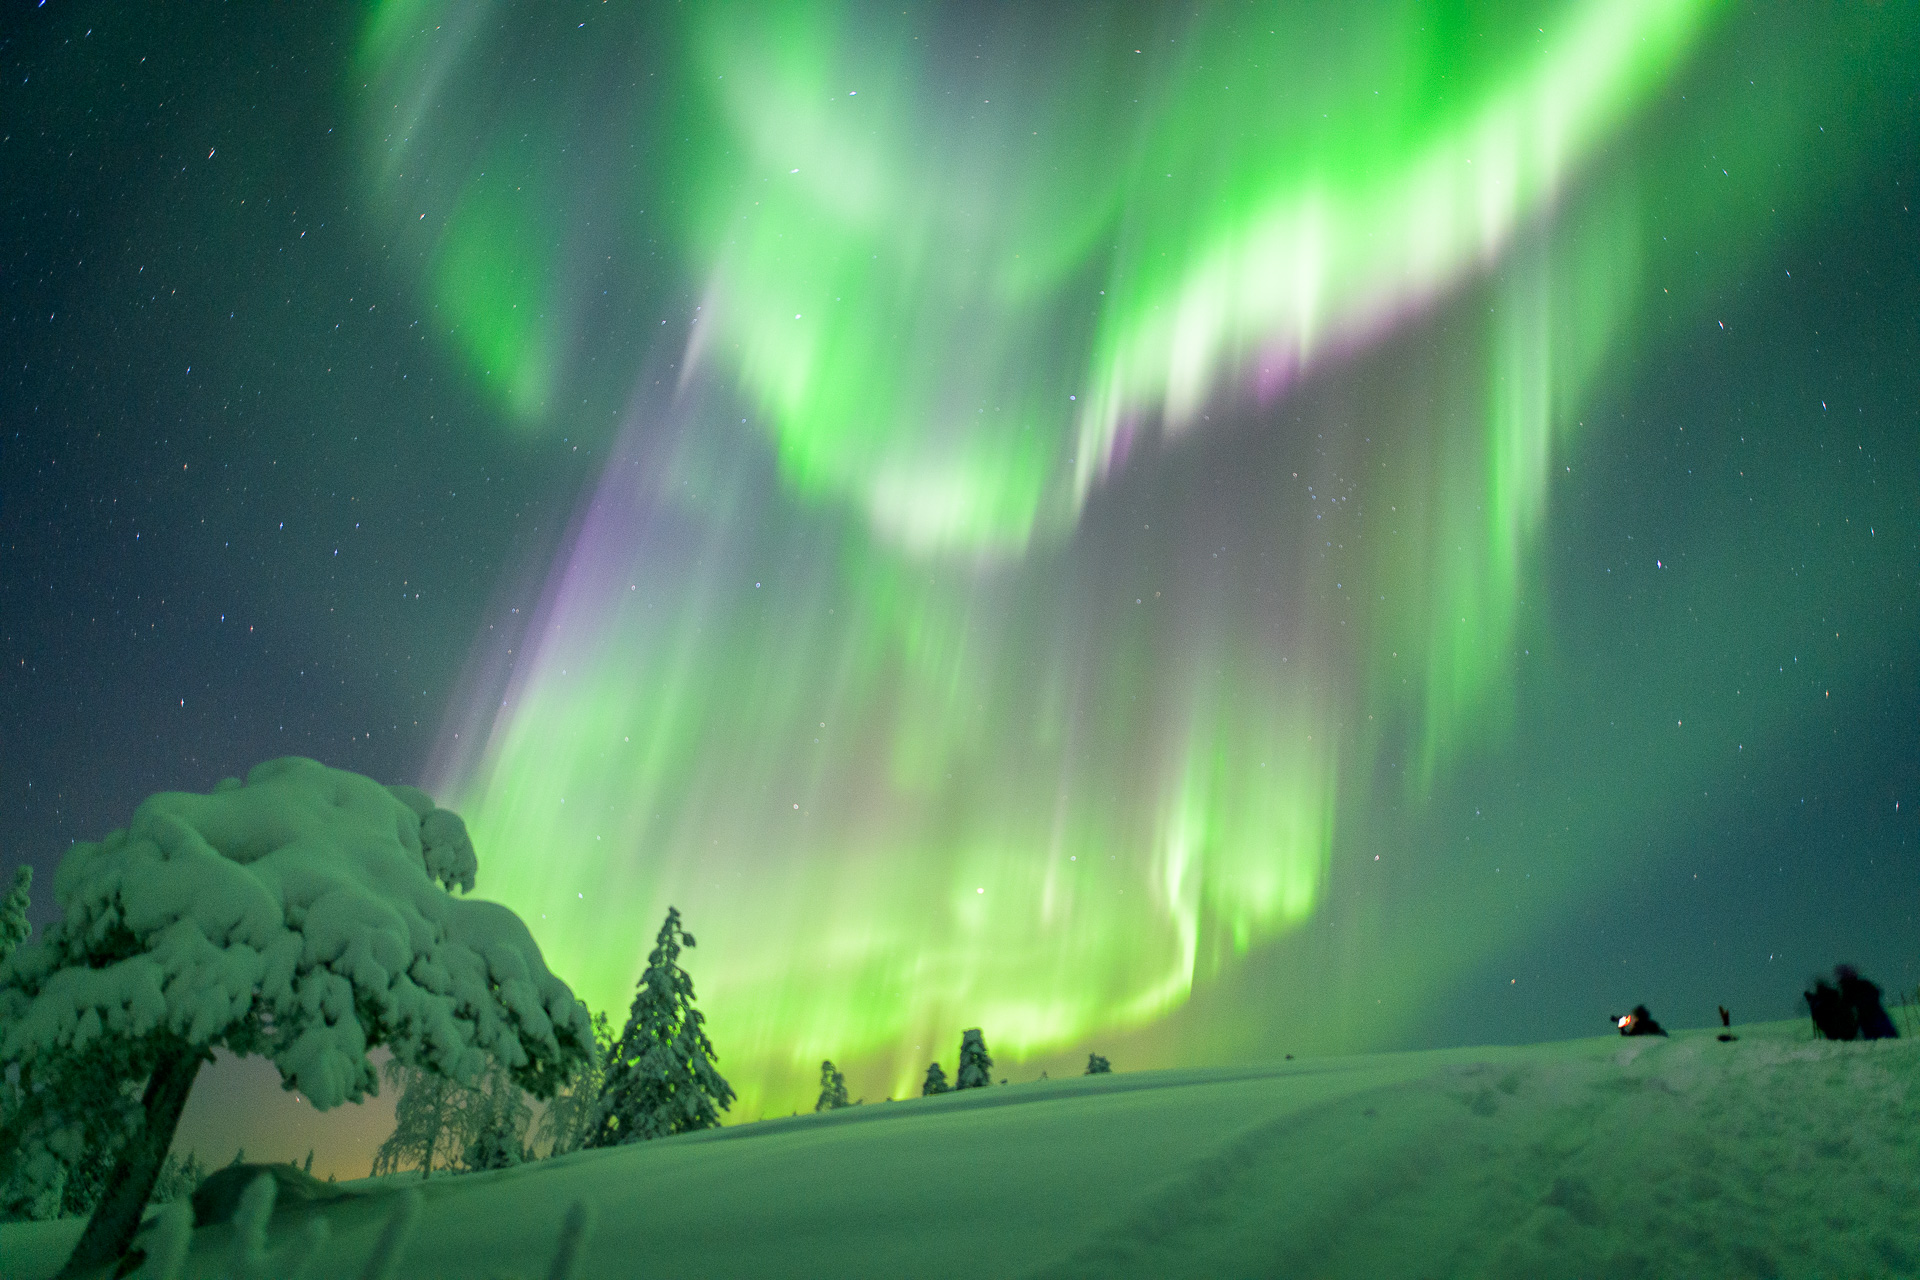 Northern Lights in the snowy forest